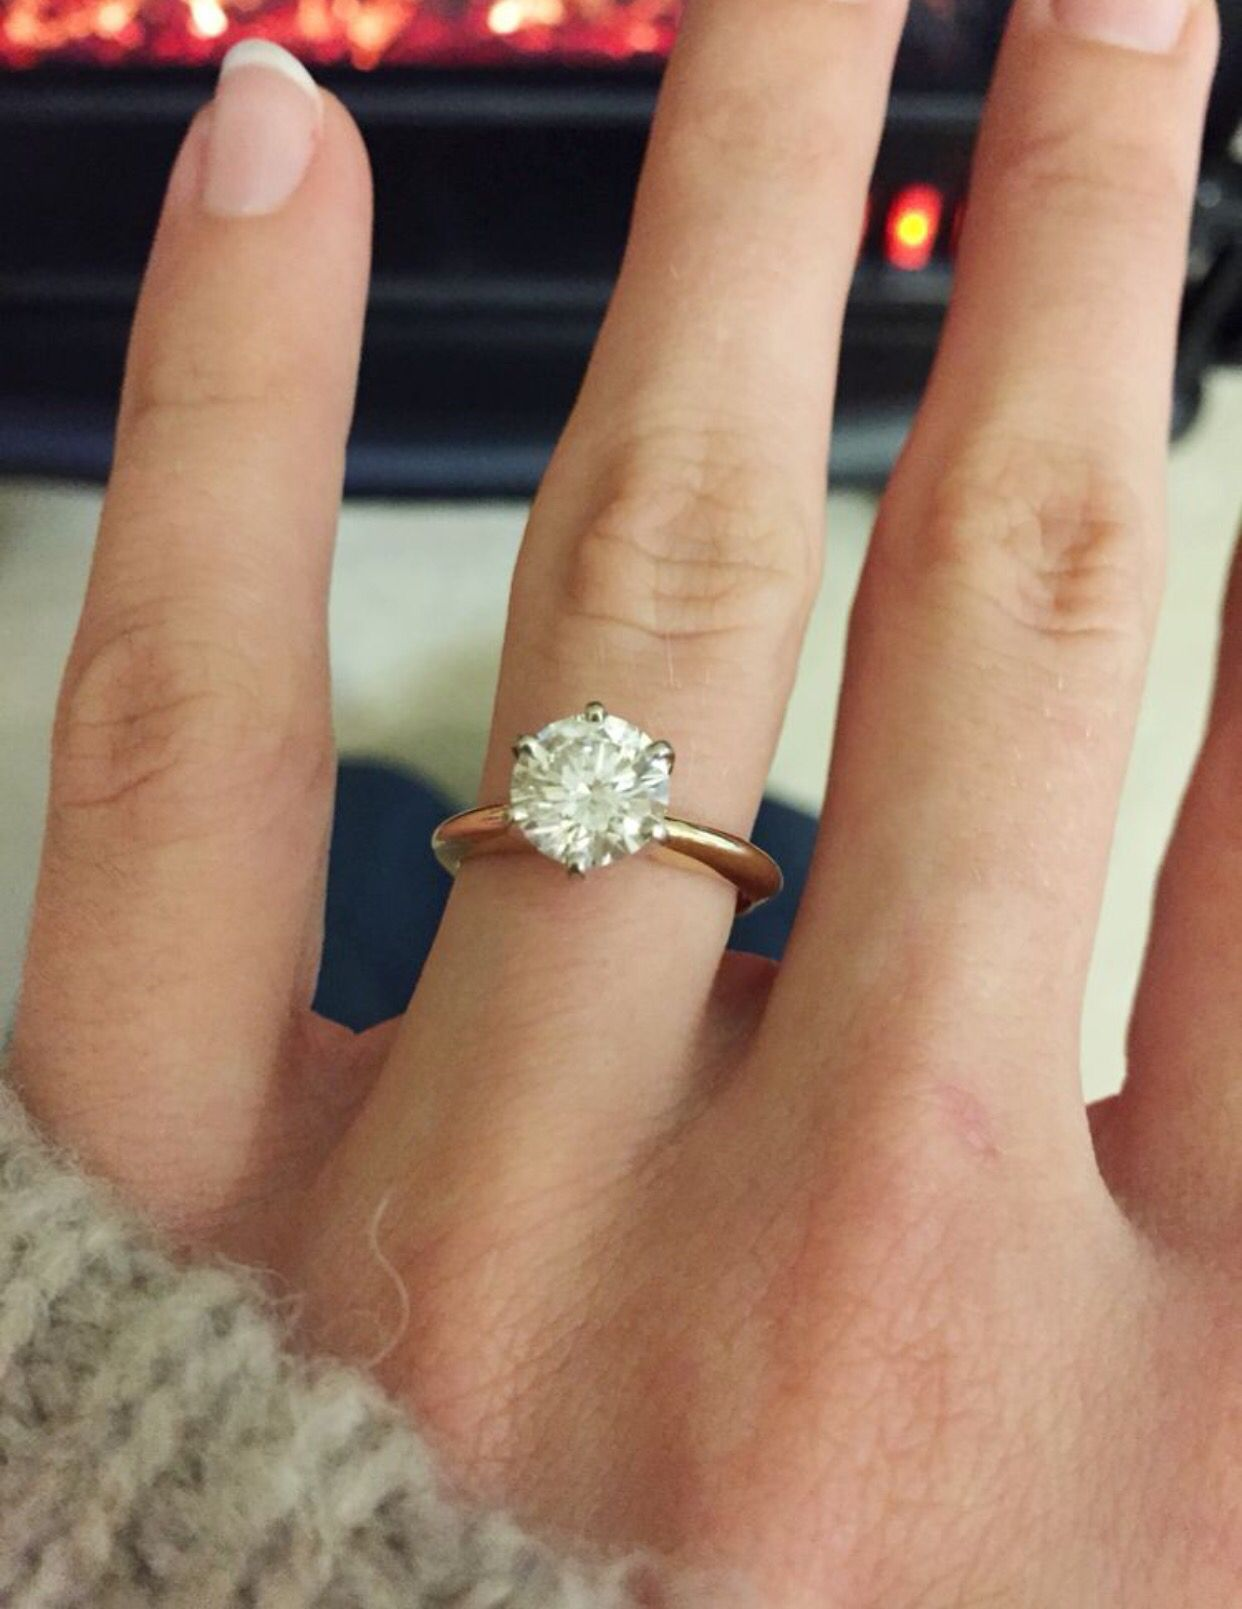 My dream engagement ring! It's so simple yet so stunning